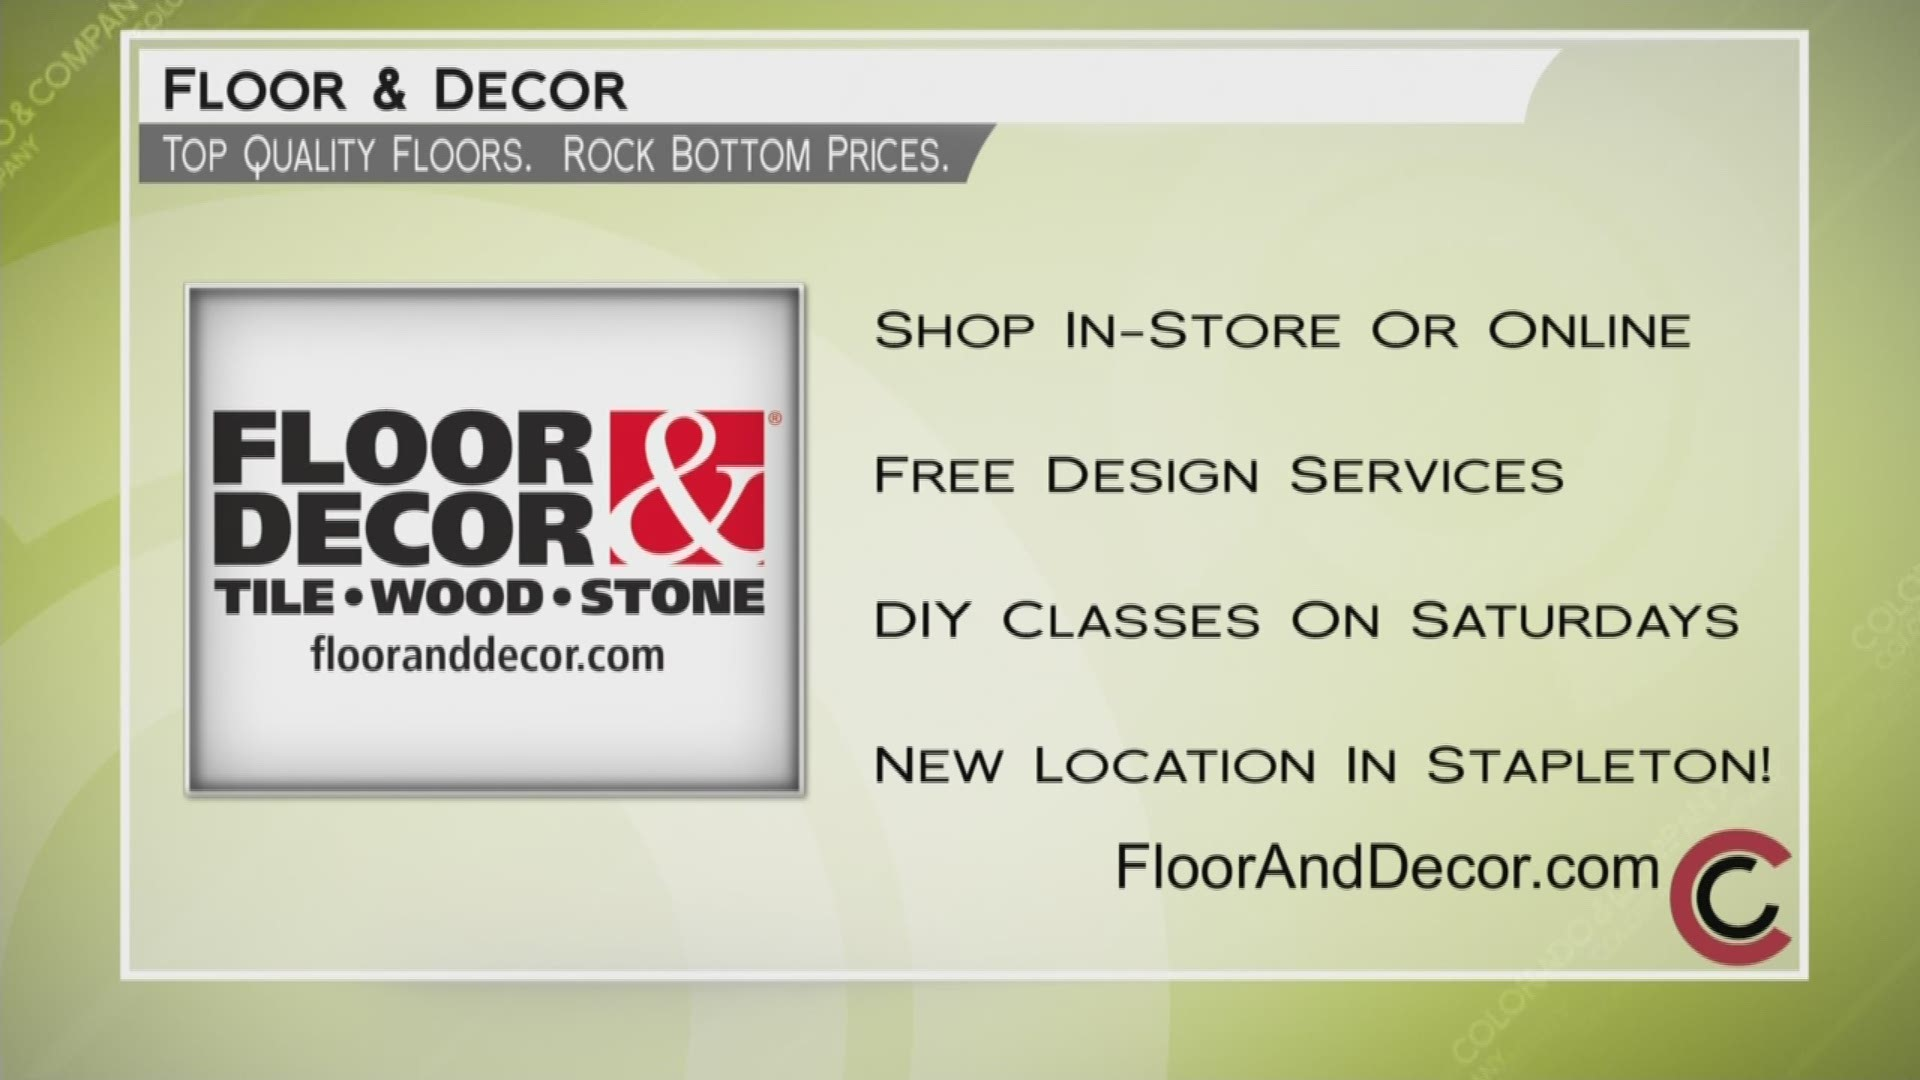 Floor Decor June 29 2018 9news